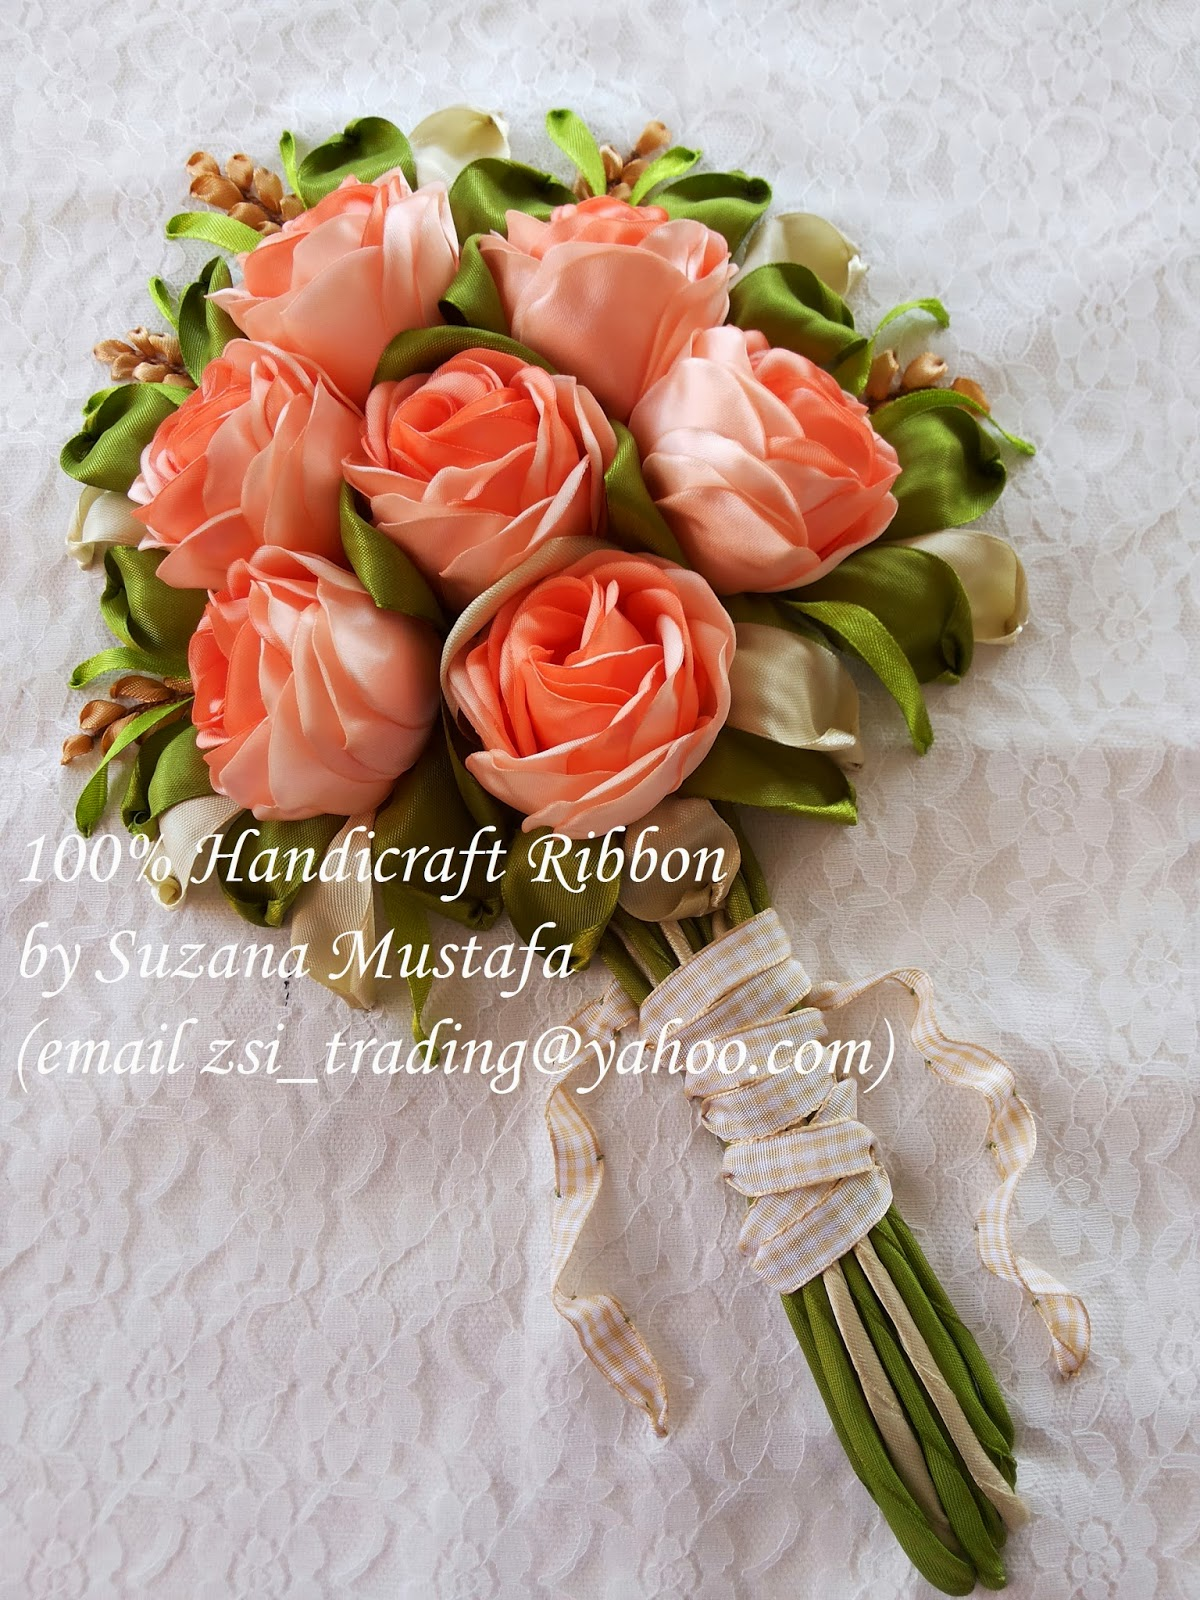 Suzana mustafa peach rose